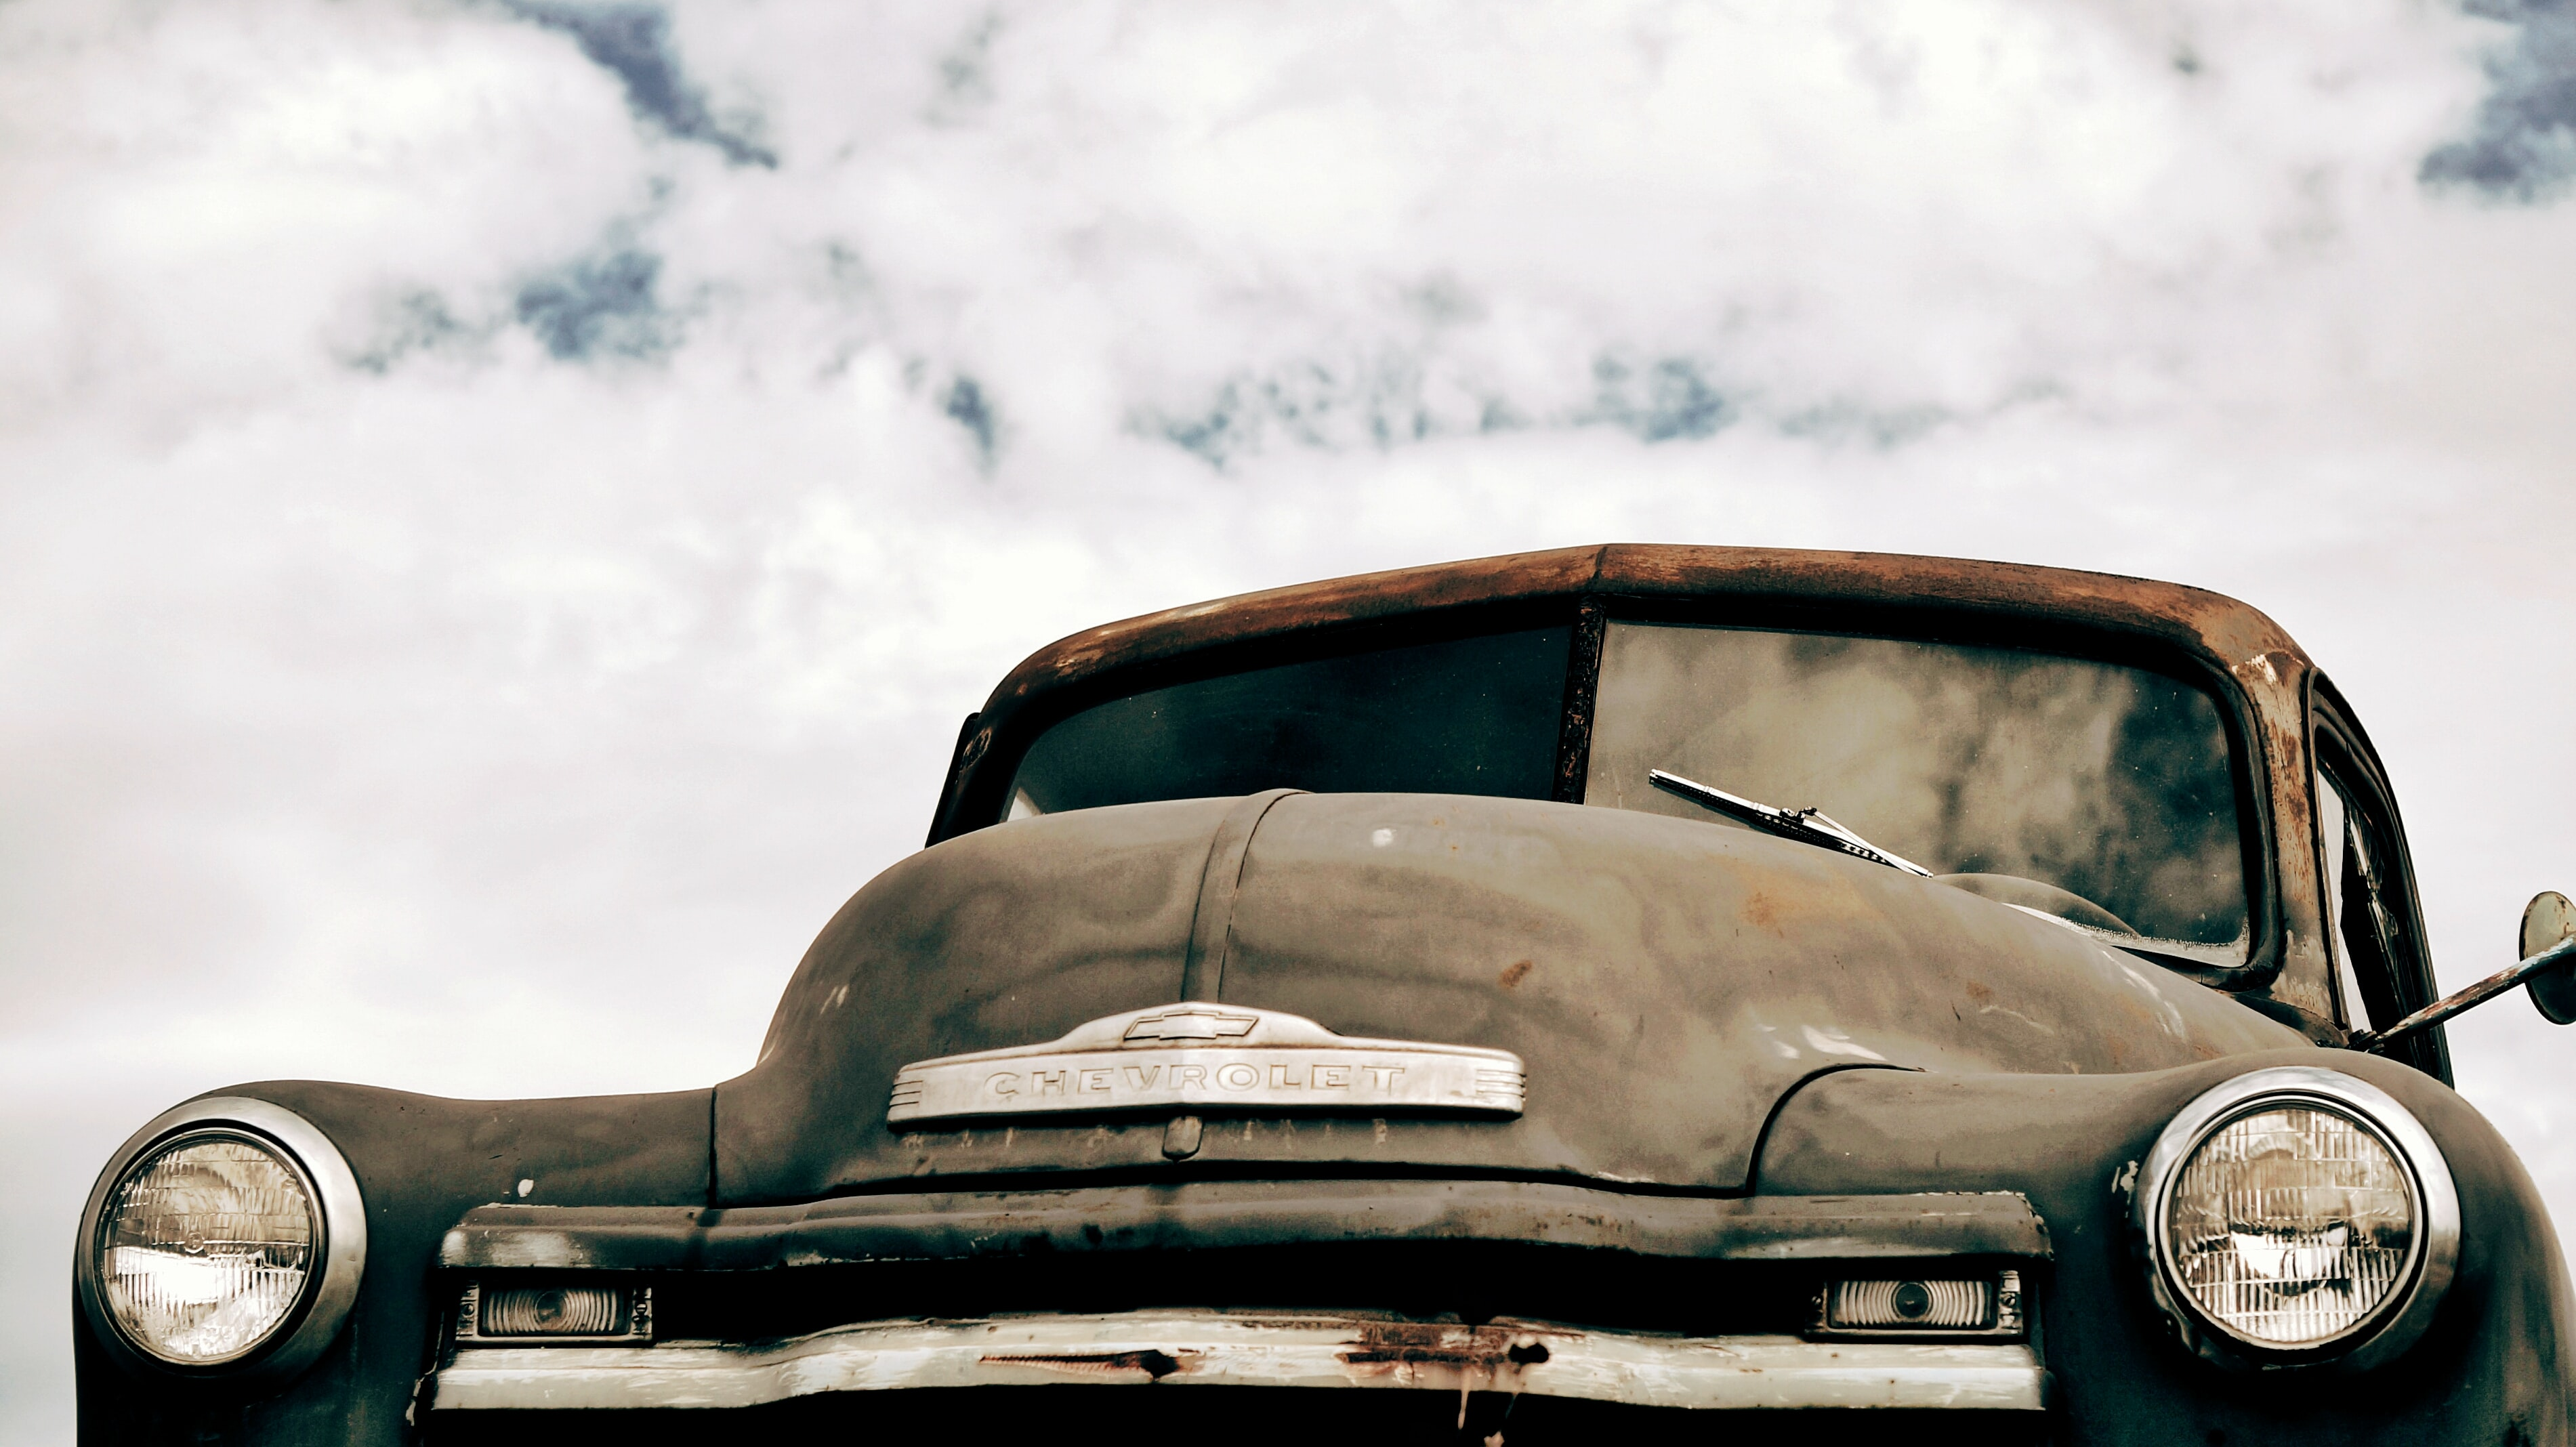 vintage car under cloudy sky during daytime